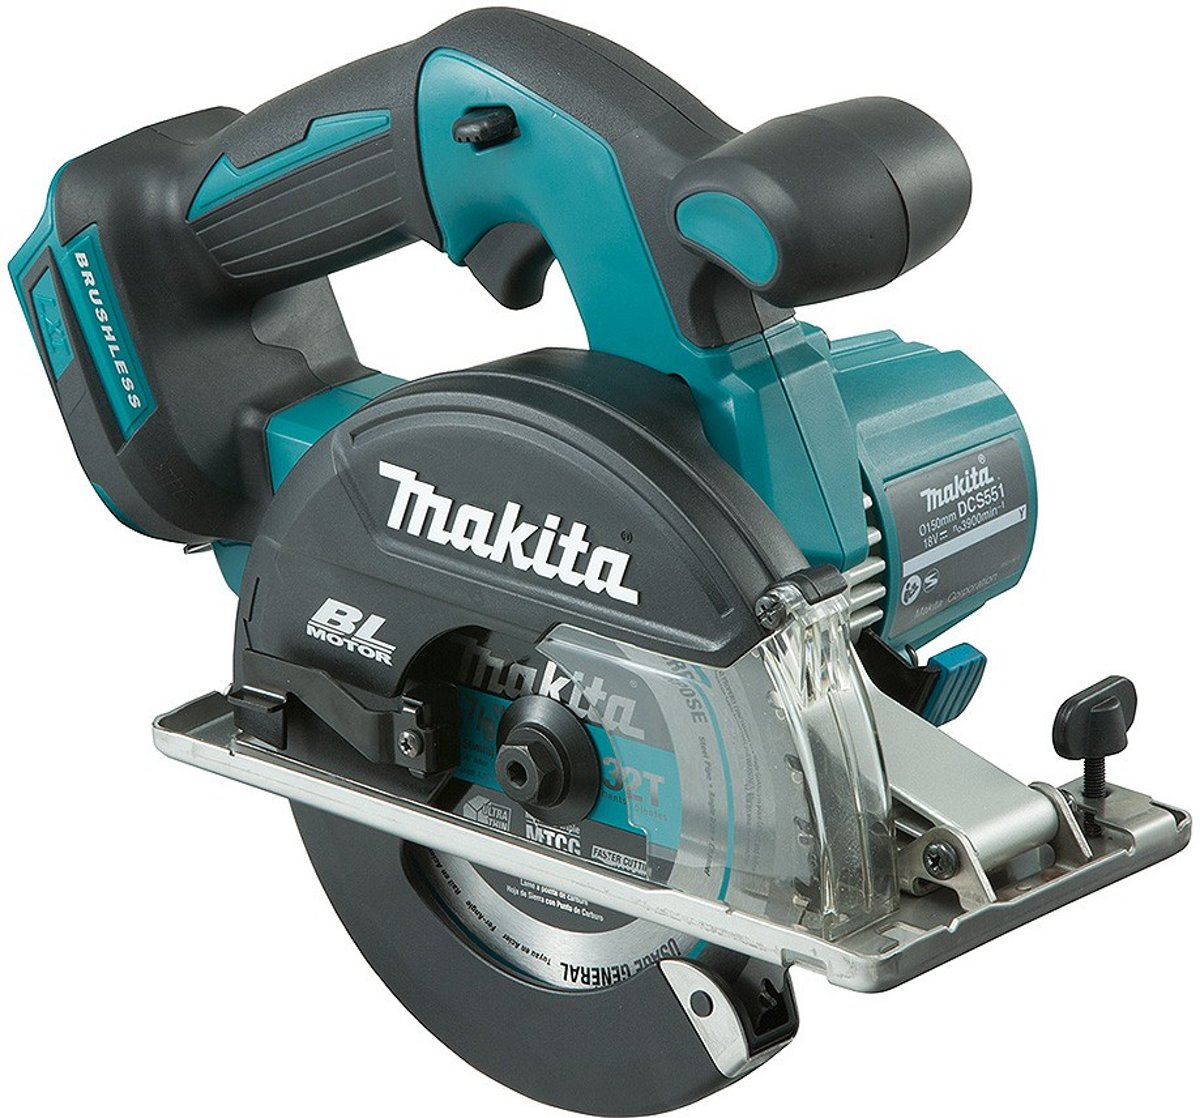 Makita DCS551Z 18V Li-Ion Accu metaalcirkelzaag body - 150mm - koolborstelloos